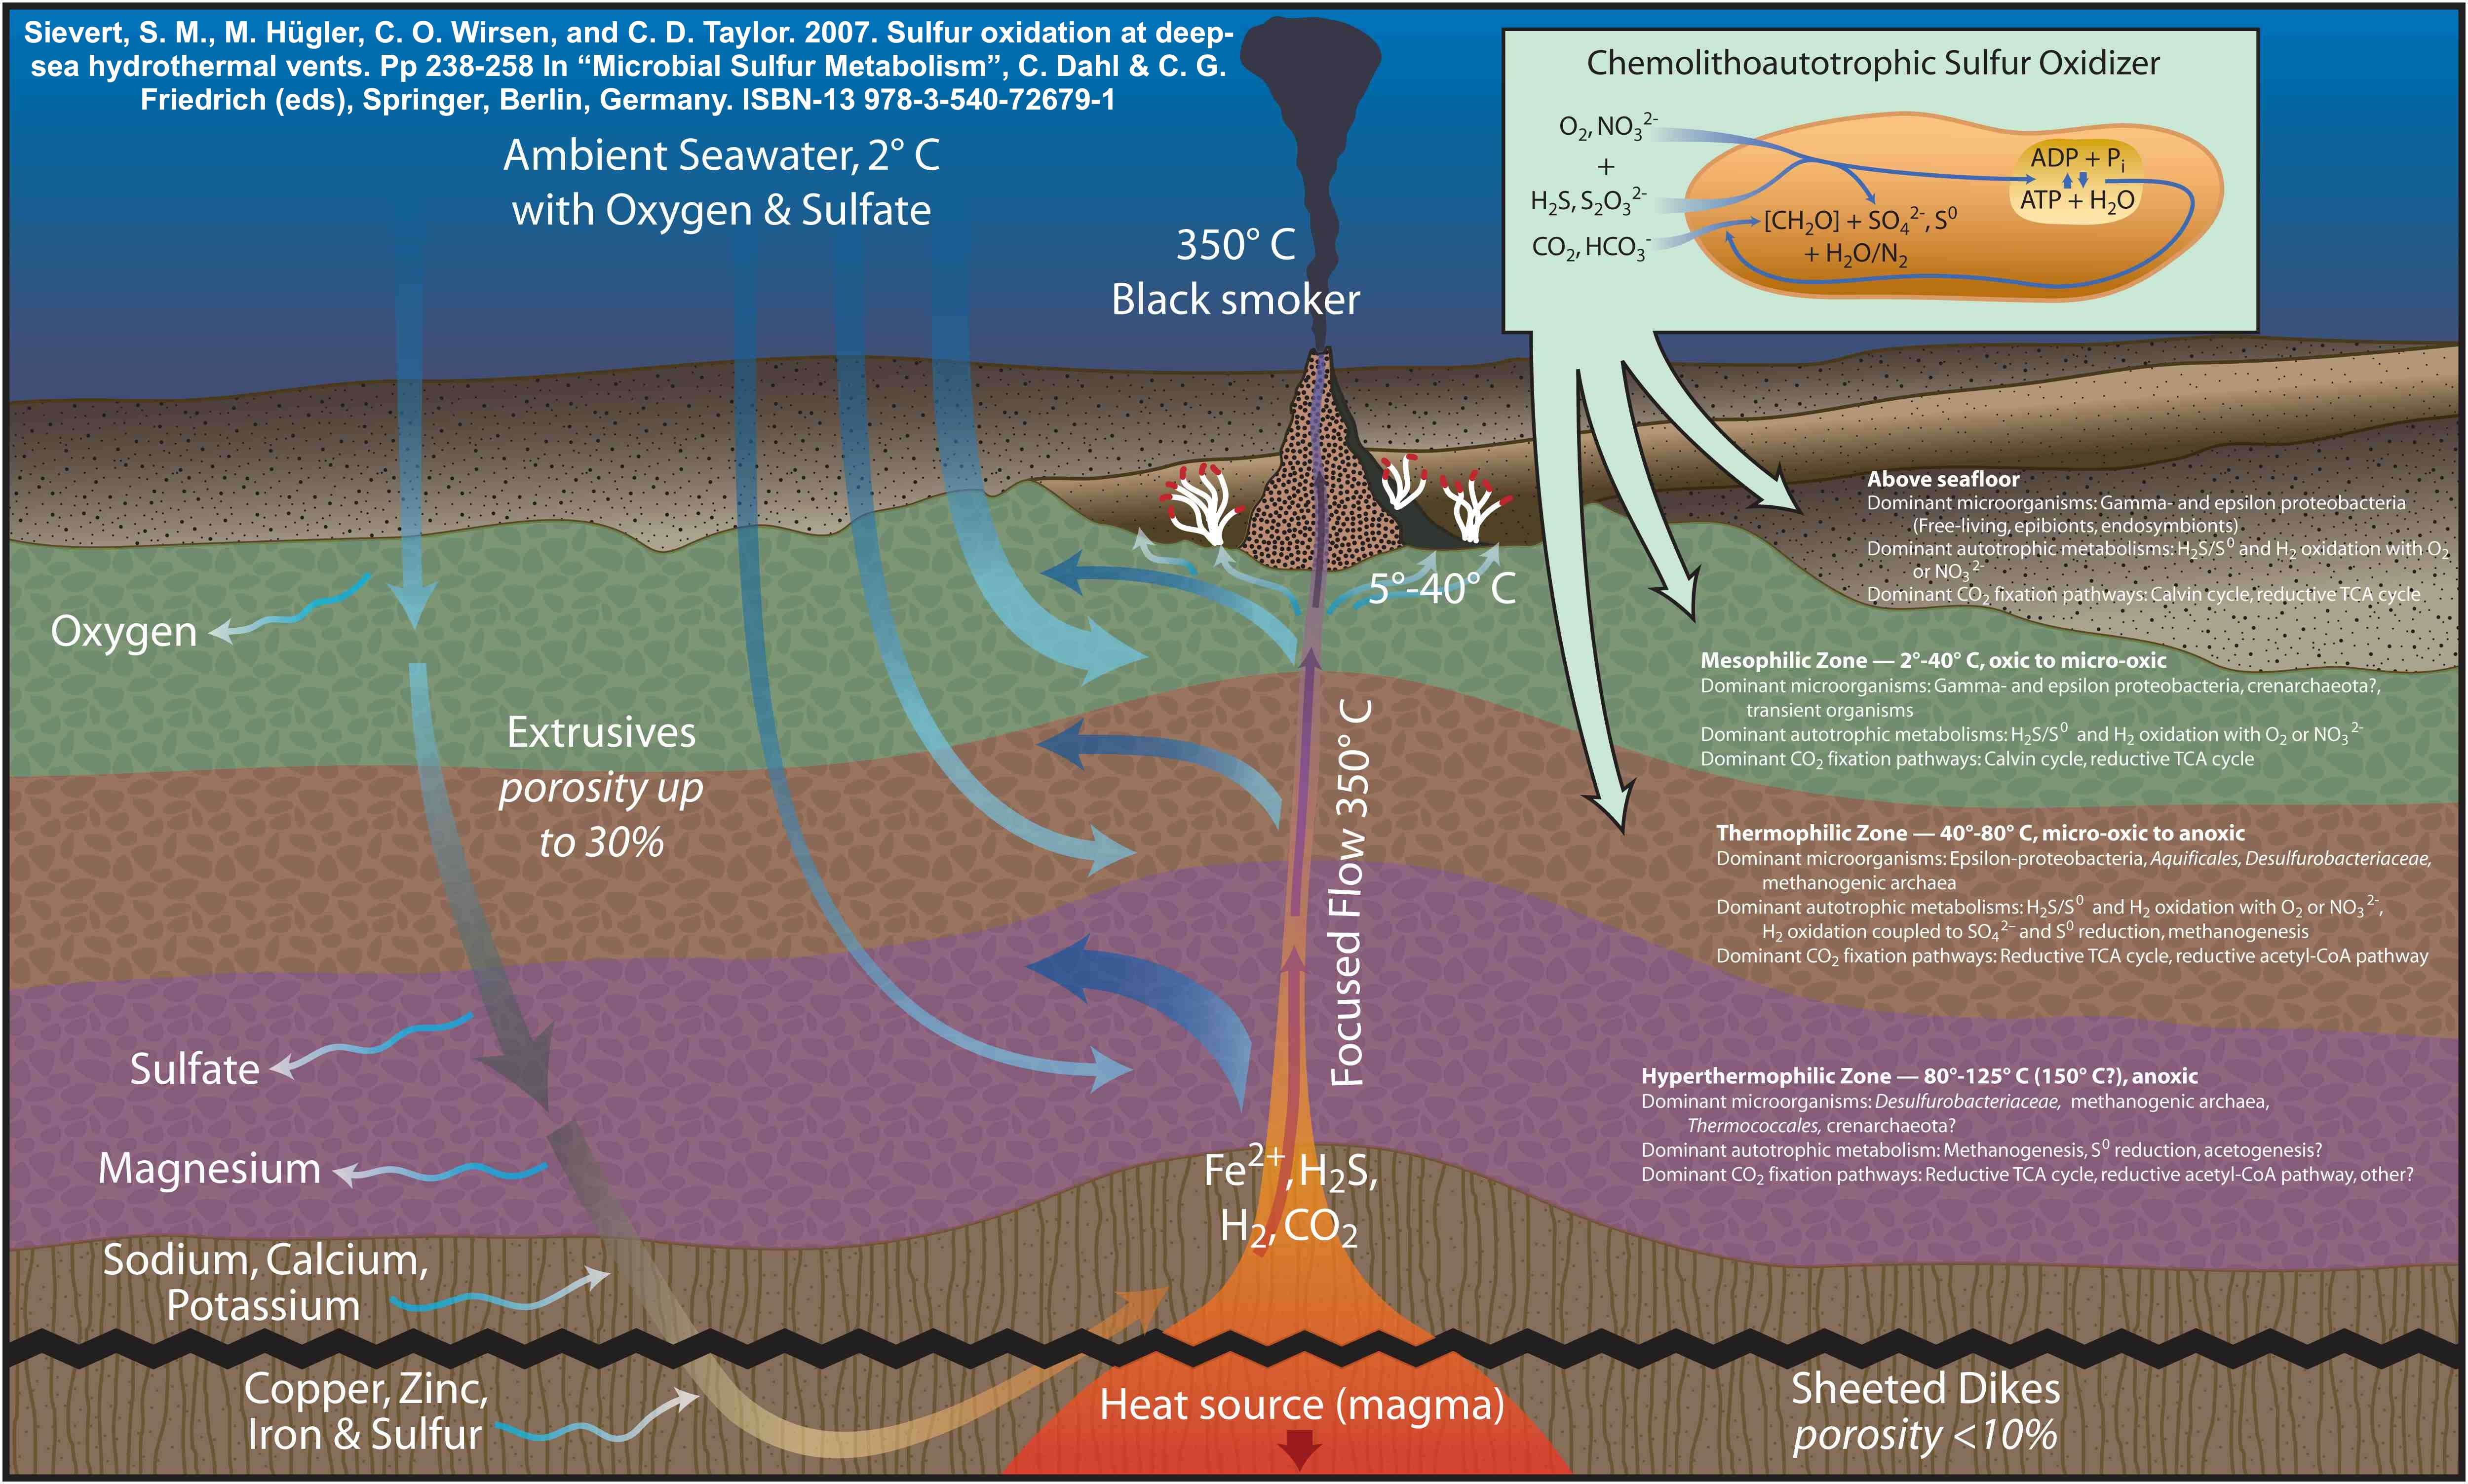 Schematic diagram depicting a mid-ocean ridge hydrothermal vent